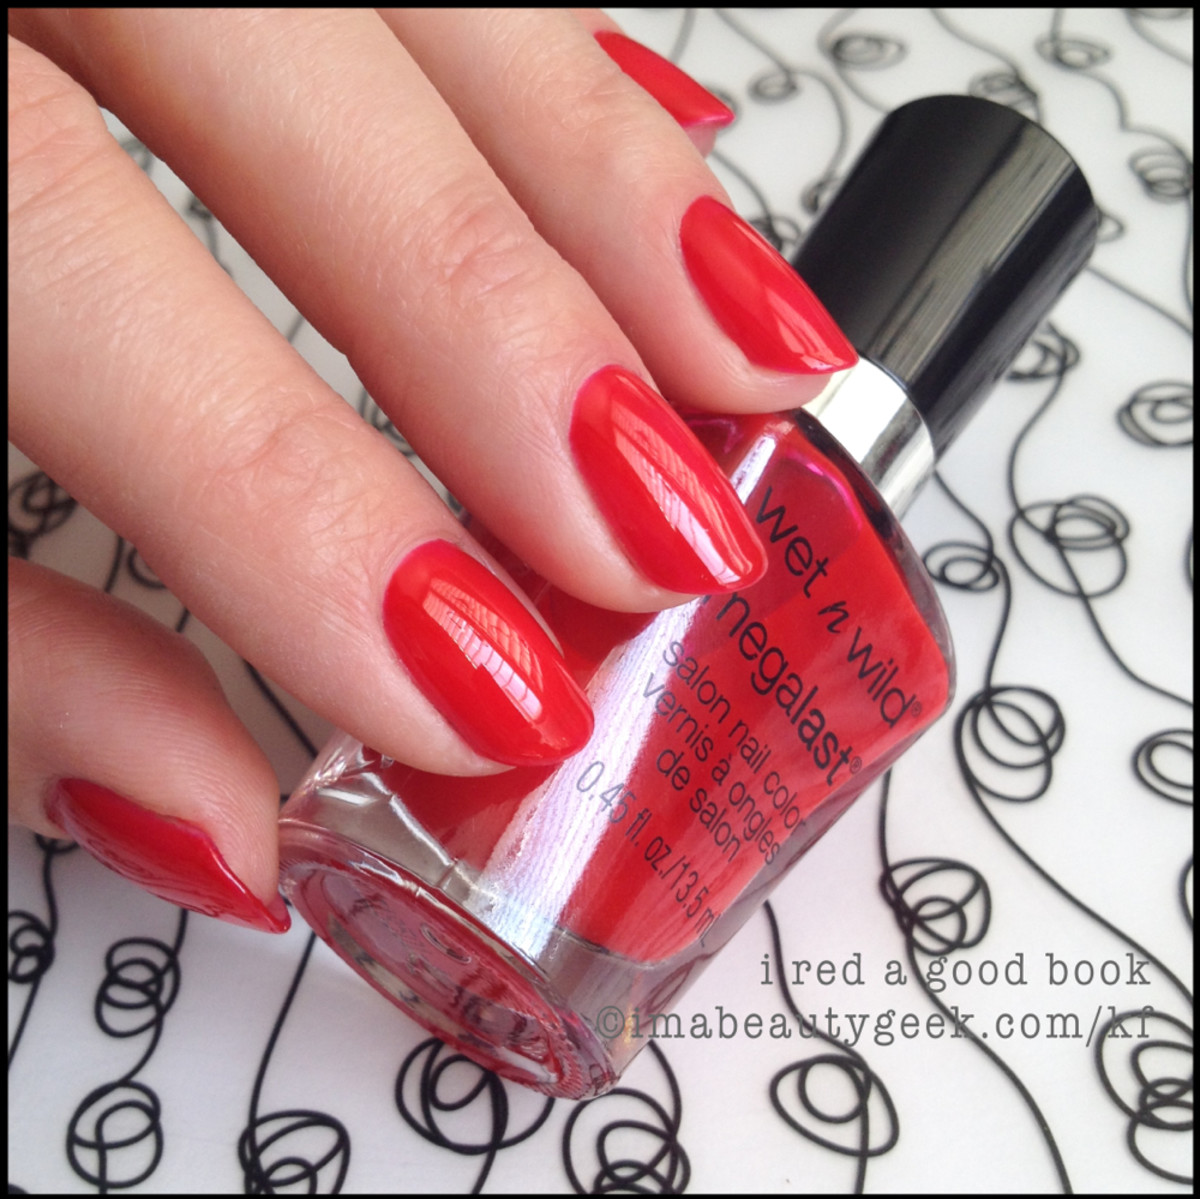 Wet n Wild Polish I Red a Good Book